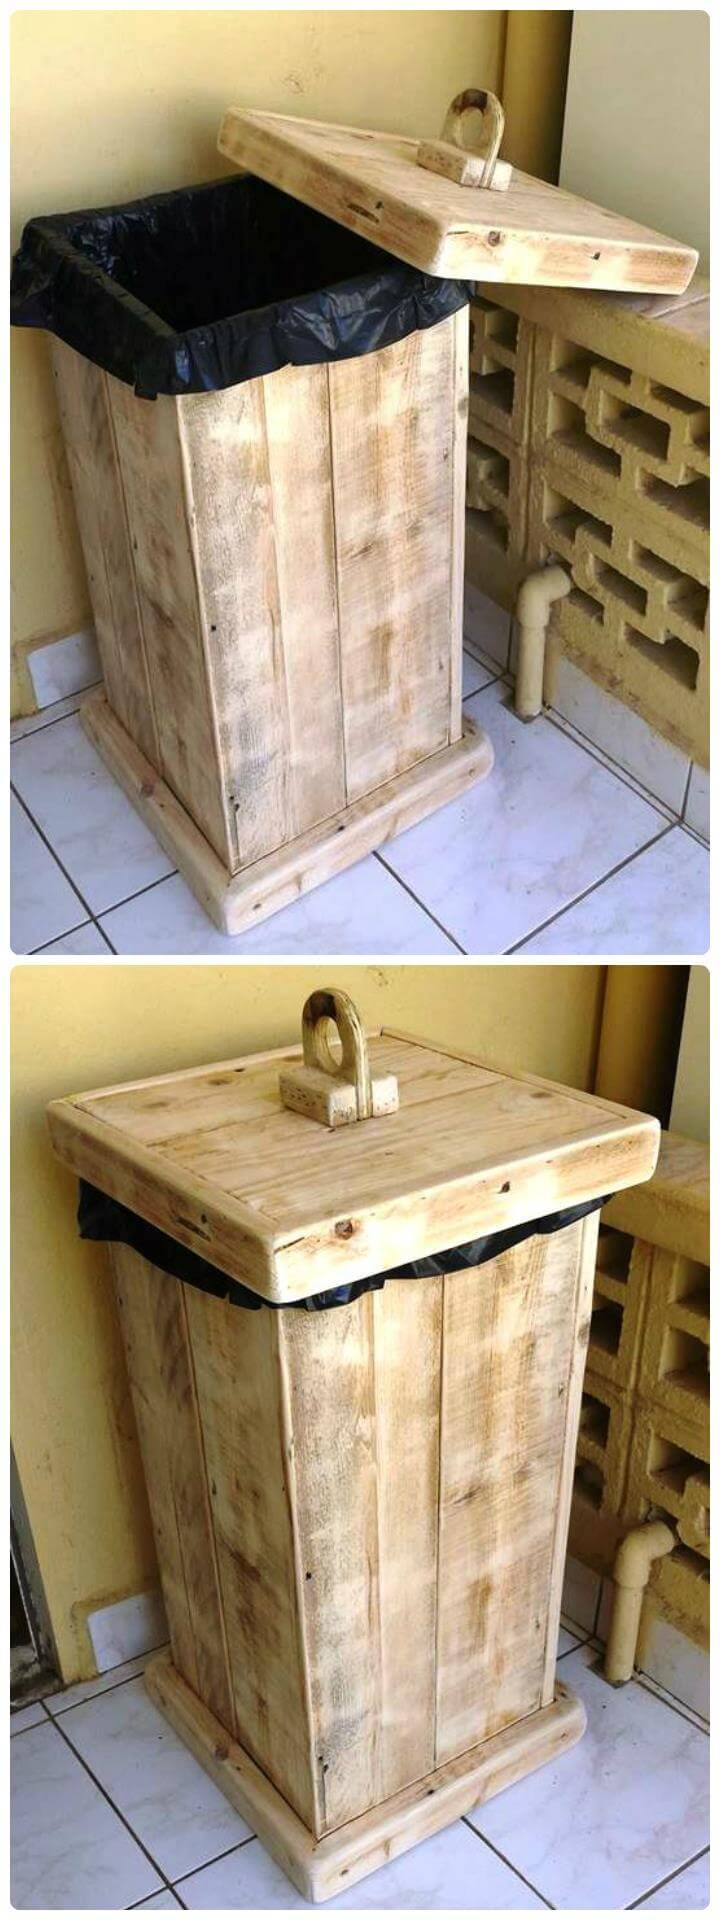 wooden pallet trash or recycle bina